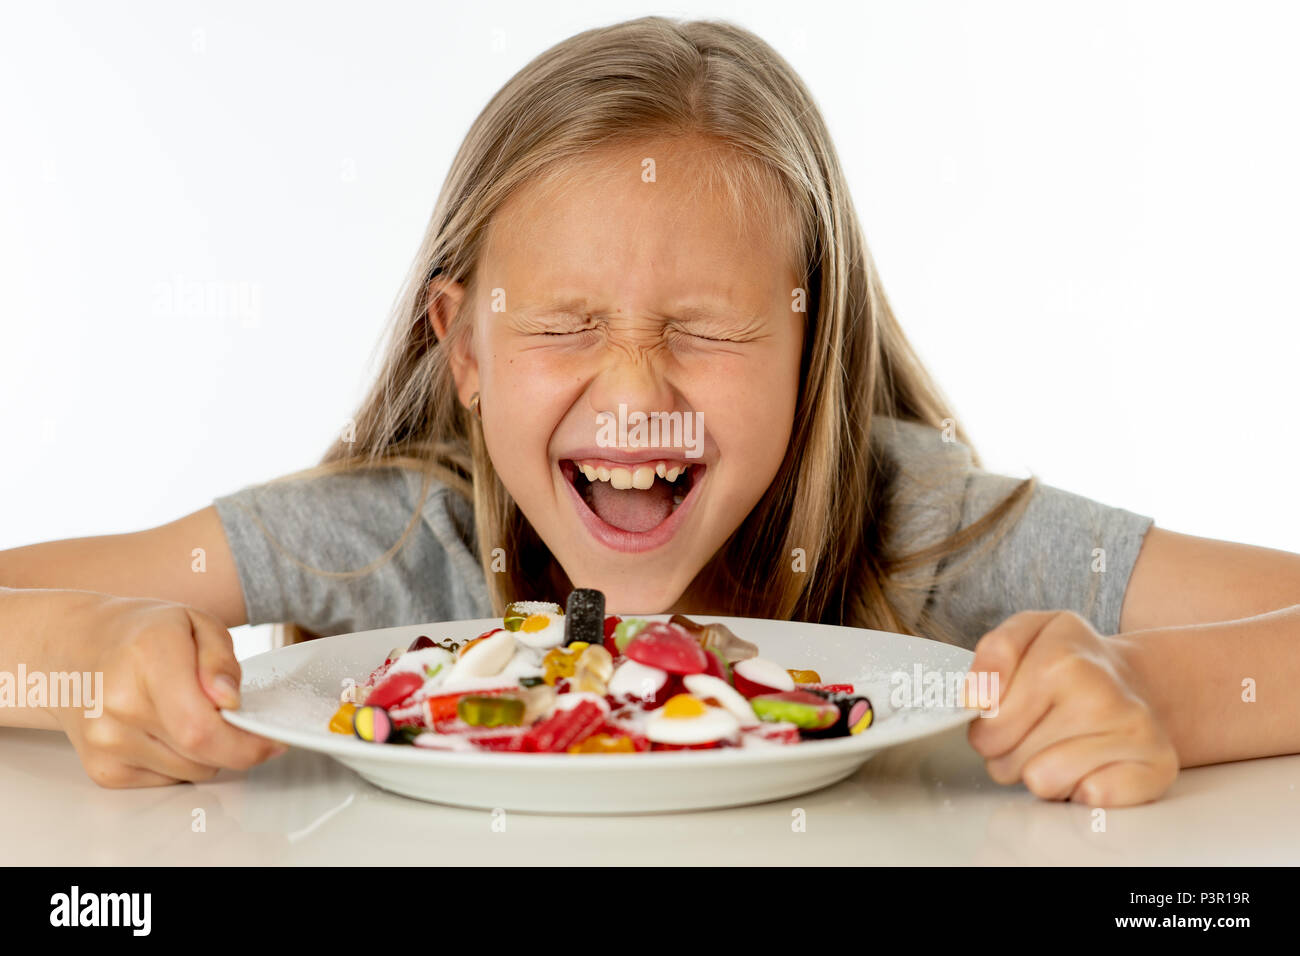 pretty happy sugar high caucasian female child eating dish full of candy holding fork and knife in sweet sugar abuse dangerous diet and unhealthy nutr - Stock Image